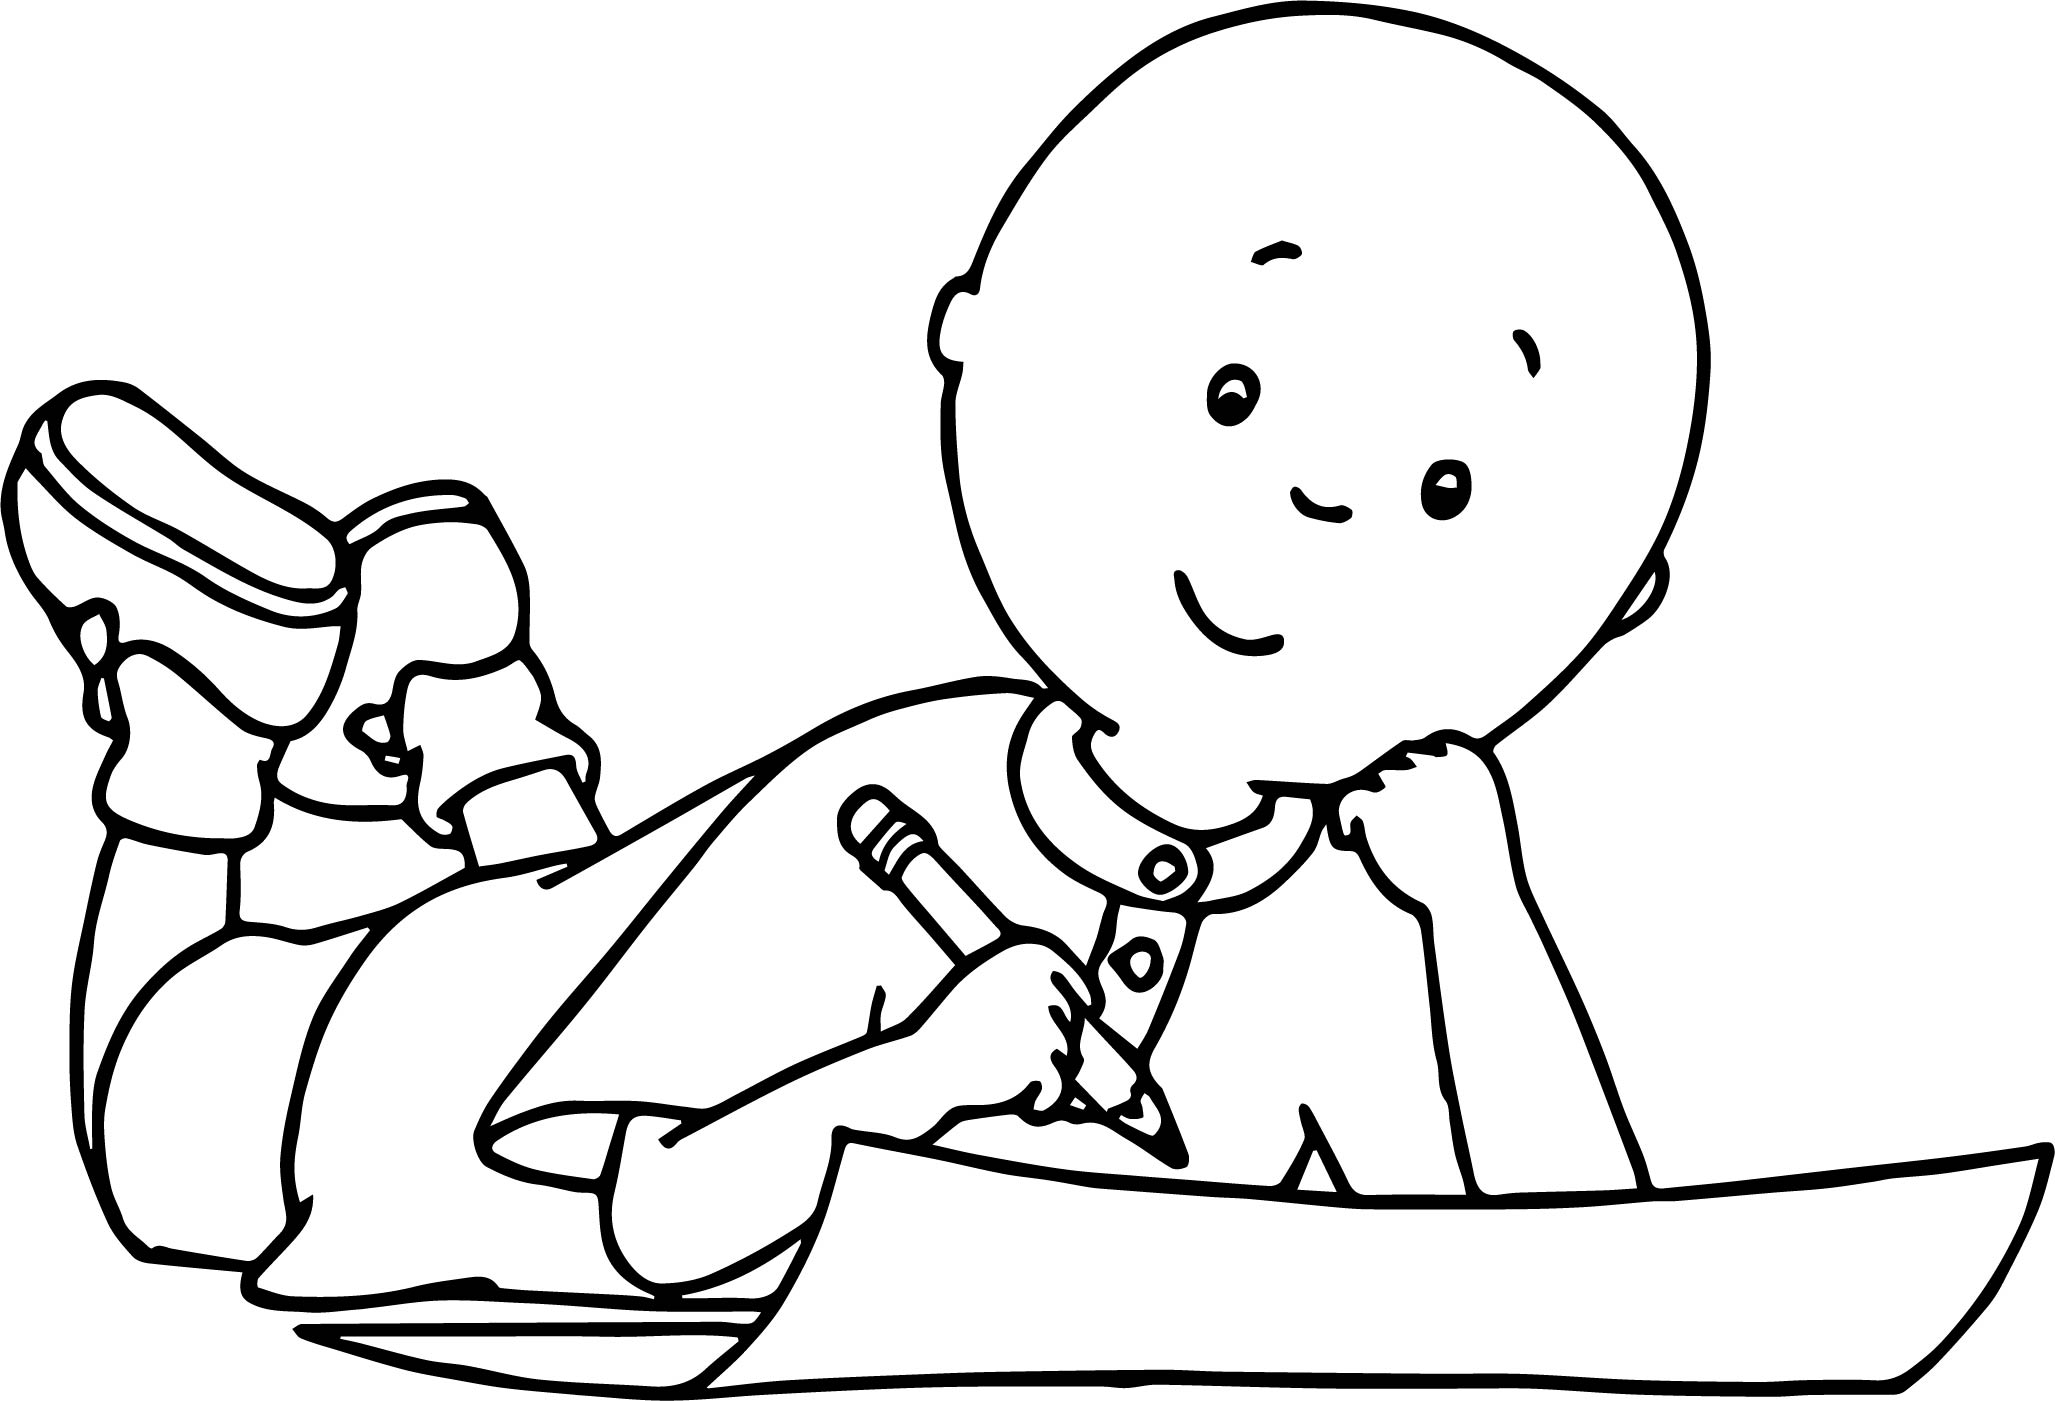 writing coloring pages | Caillou Write Coloring Page | Wecoloringpage.com